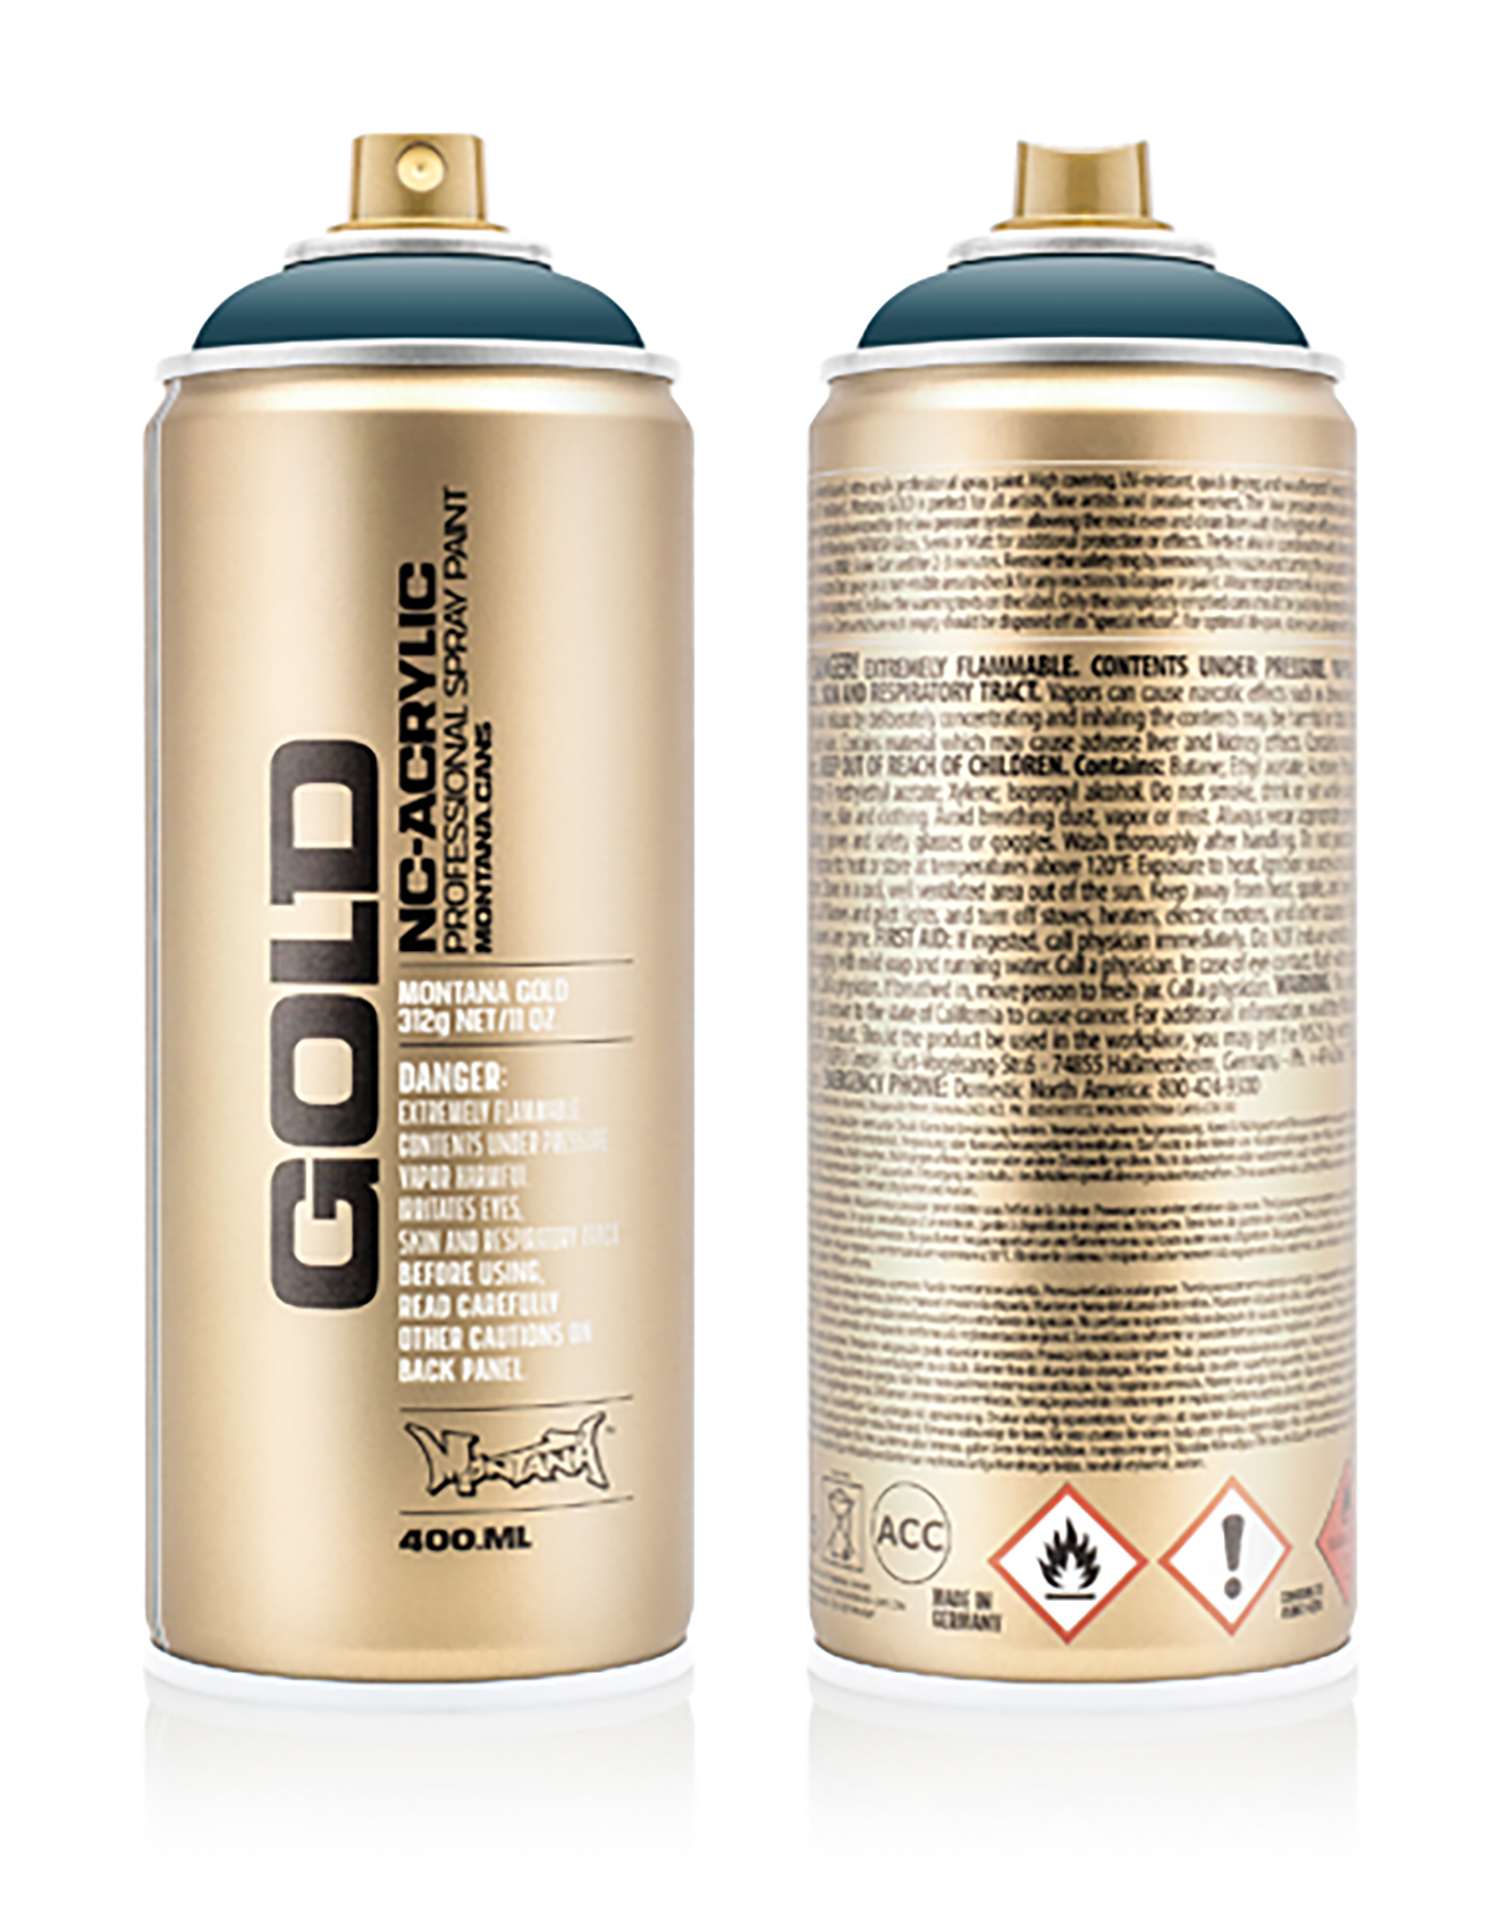 MONTANA-GOLD-SPRAY-400ML-G-5150